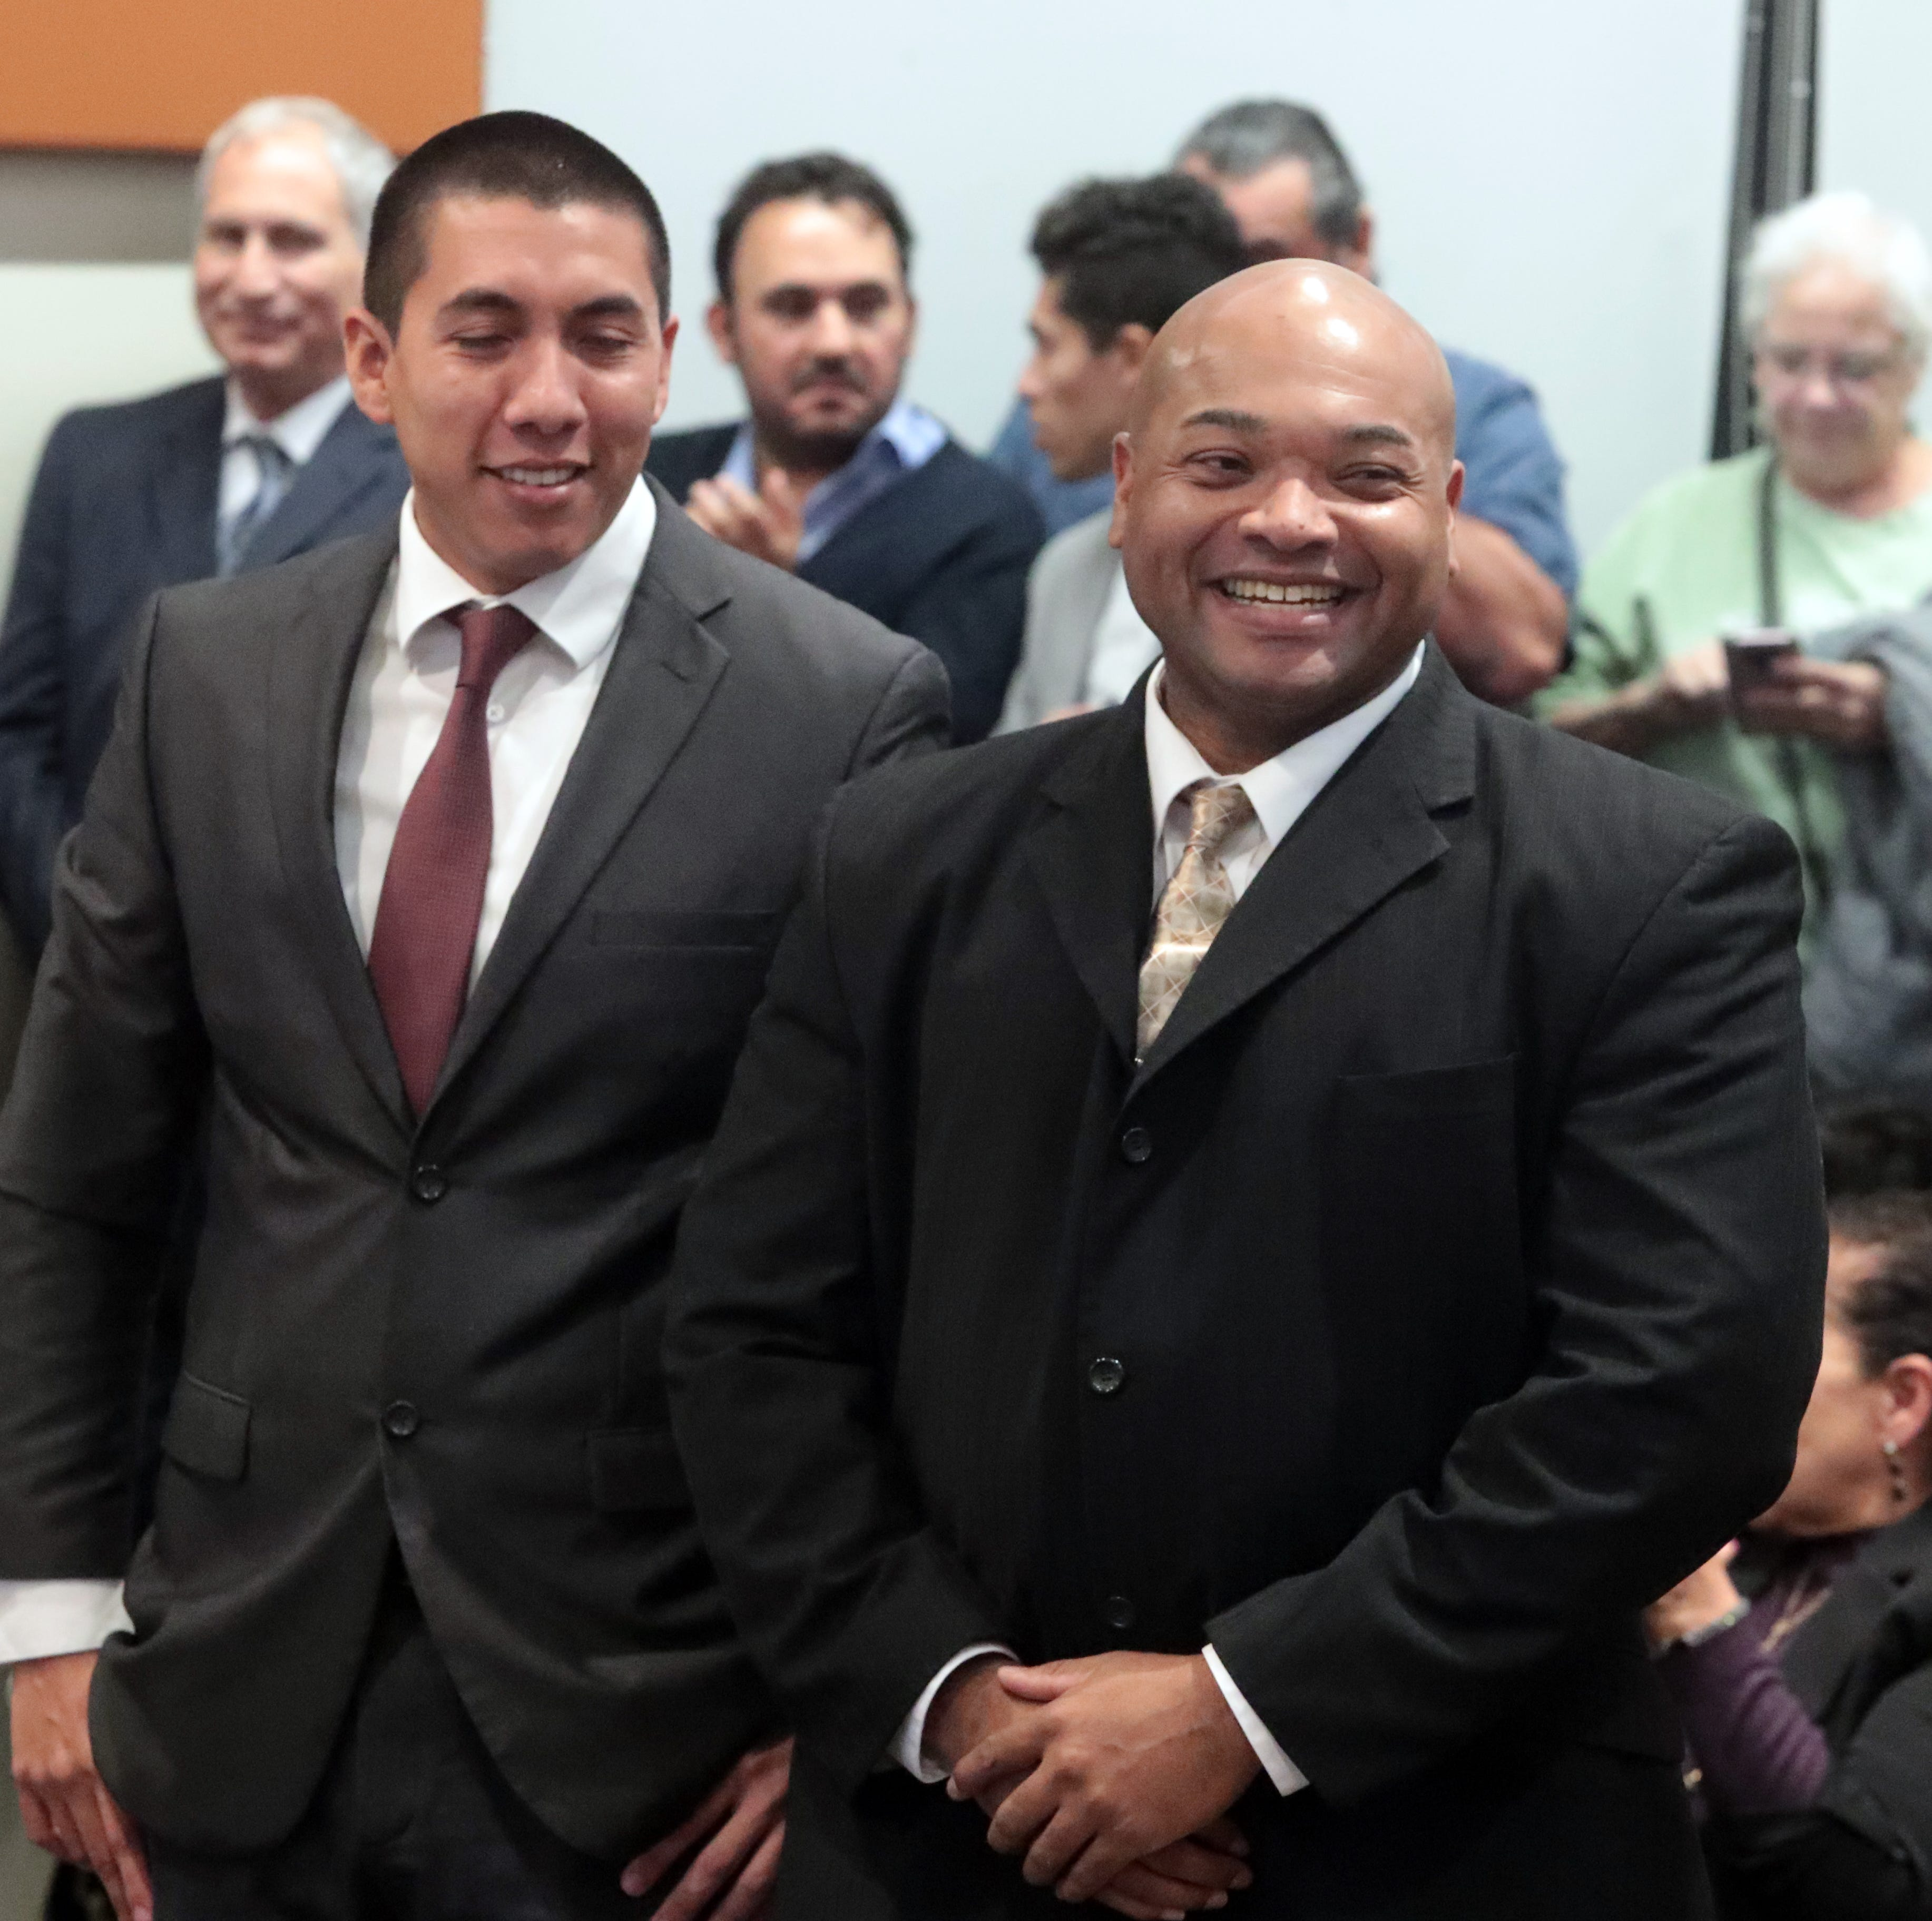 Election ushers in two new members on Indio City Council. Newcomers may shake things up